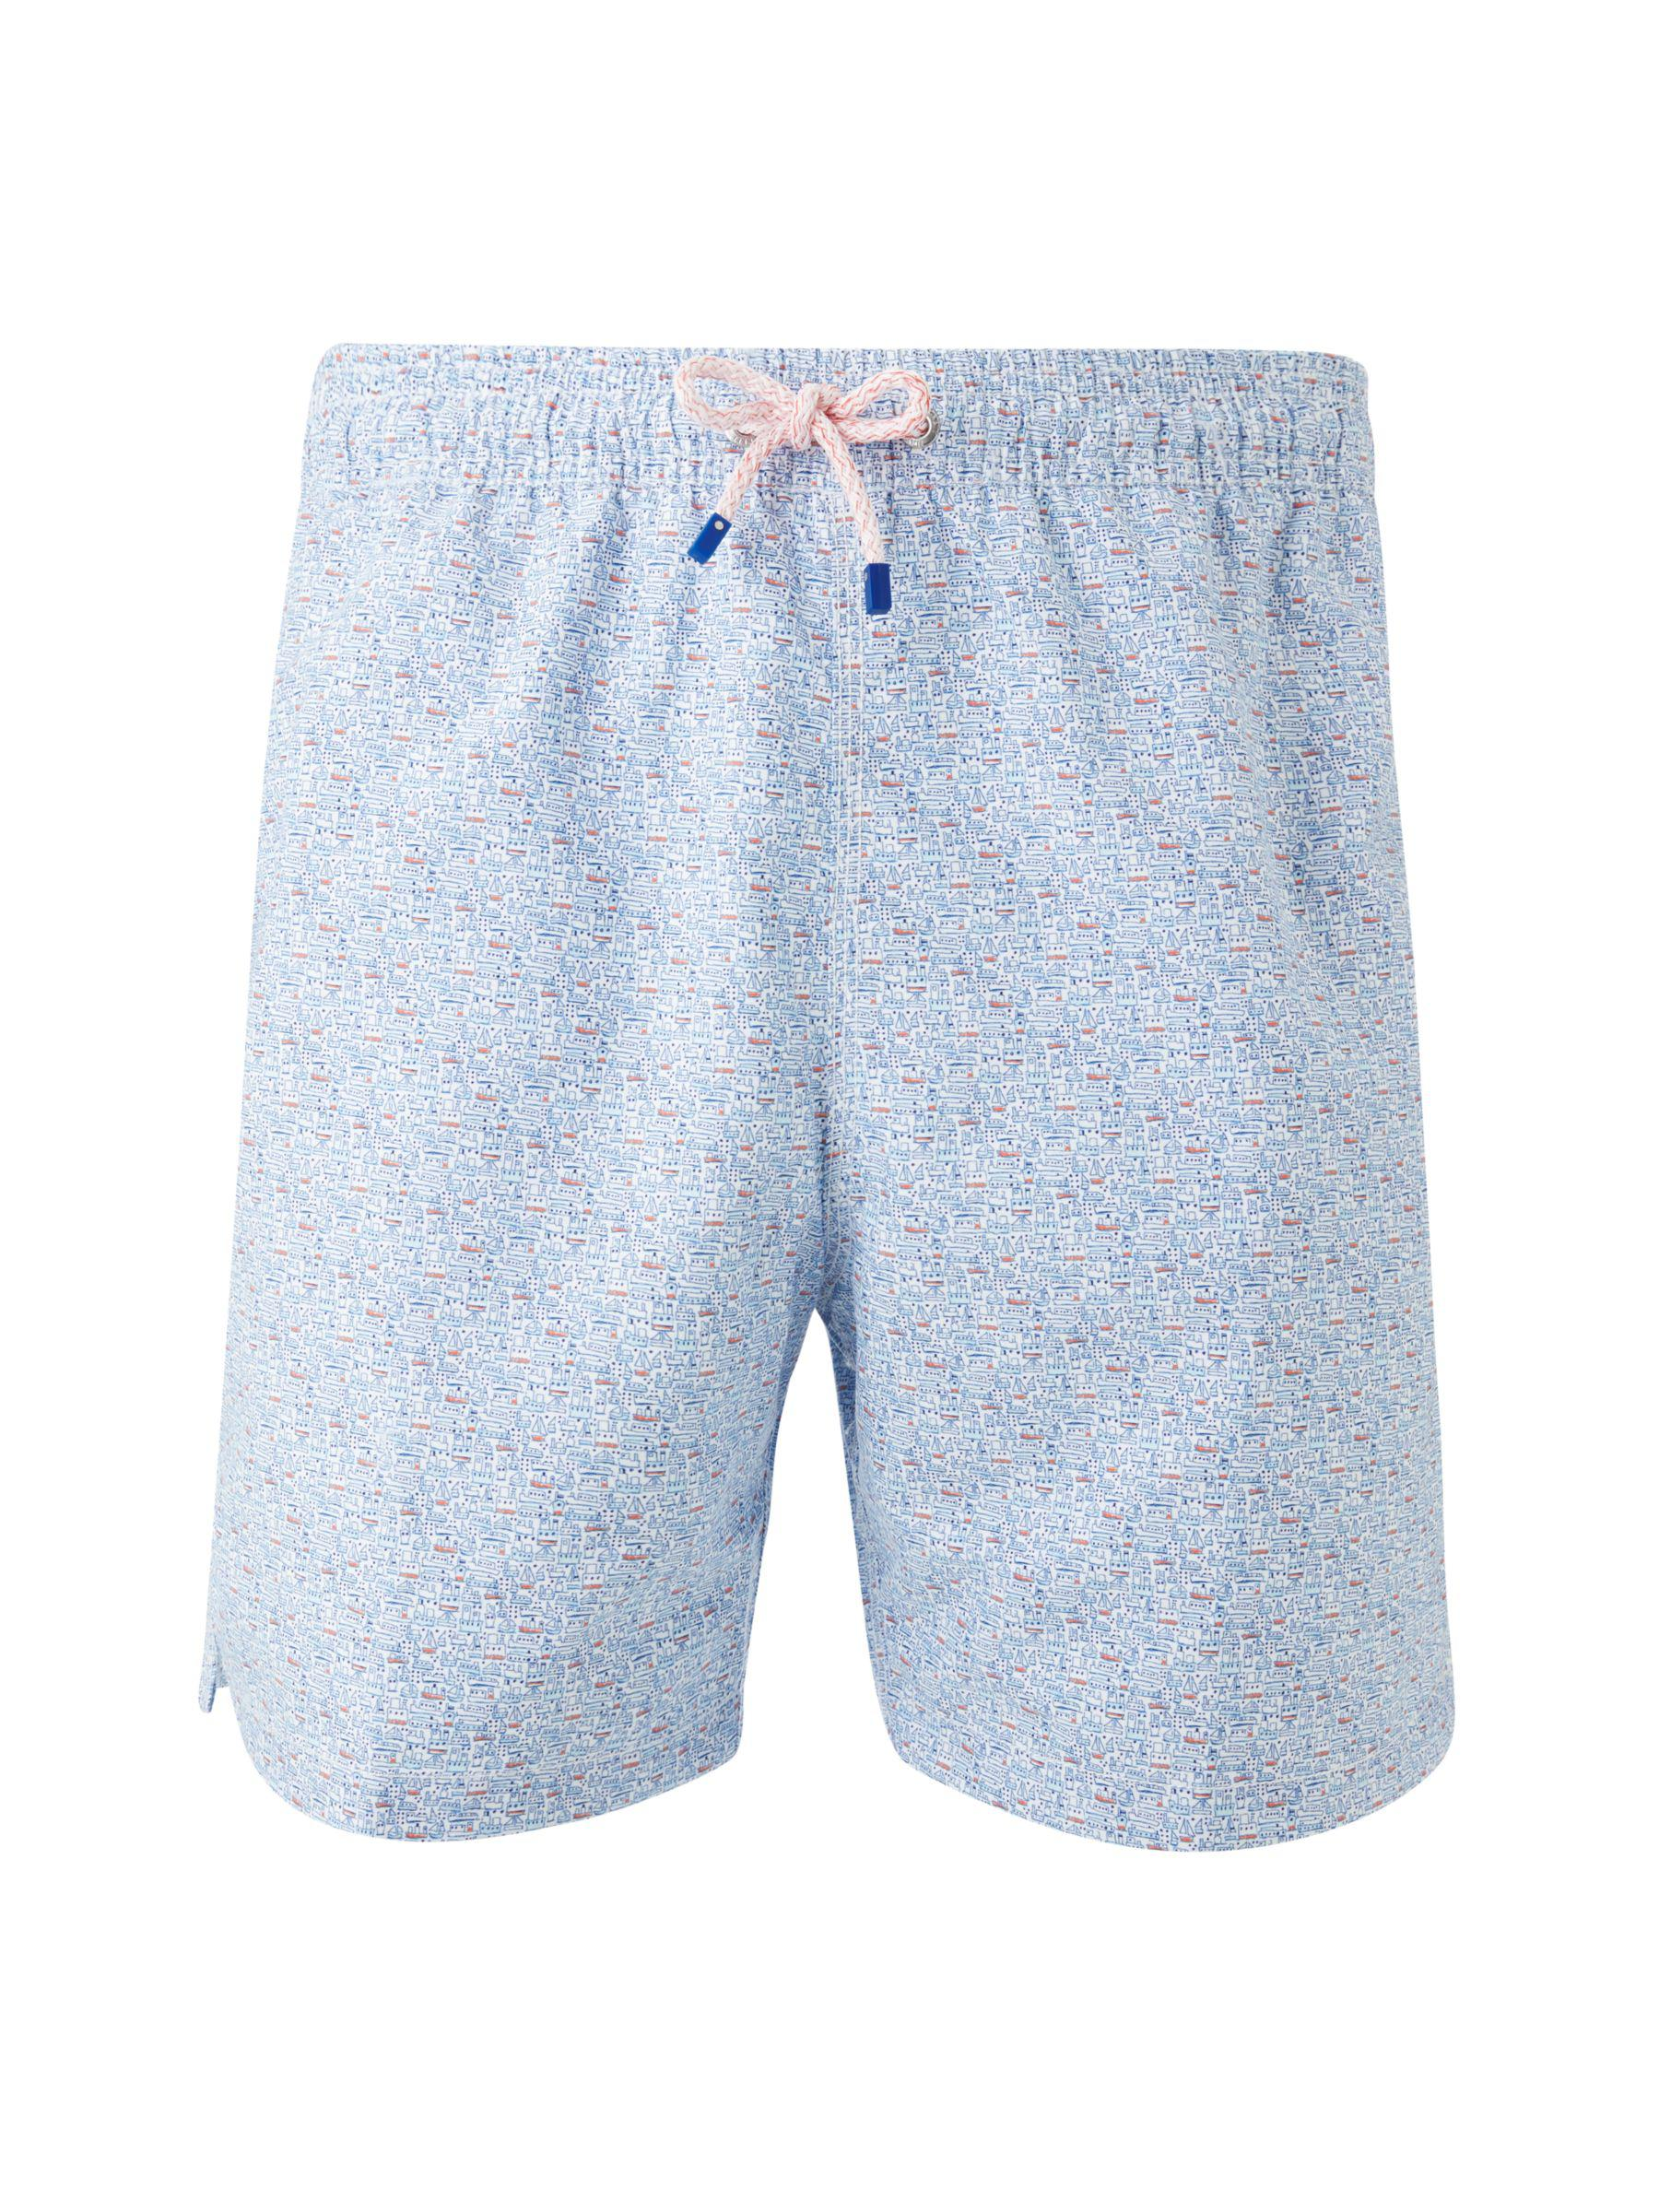 369eb0b866 Hackett Devon Scene Print Swim Shorts in Blue for Men - Lyst